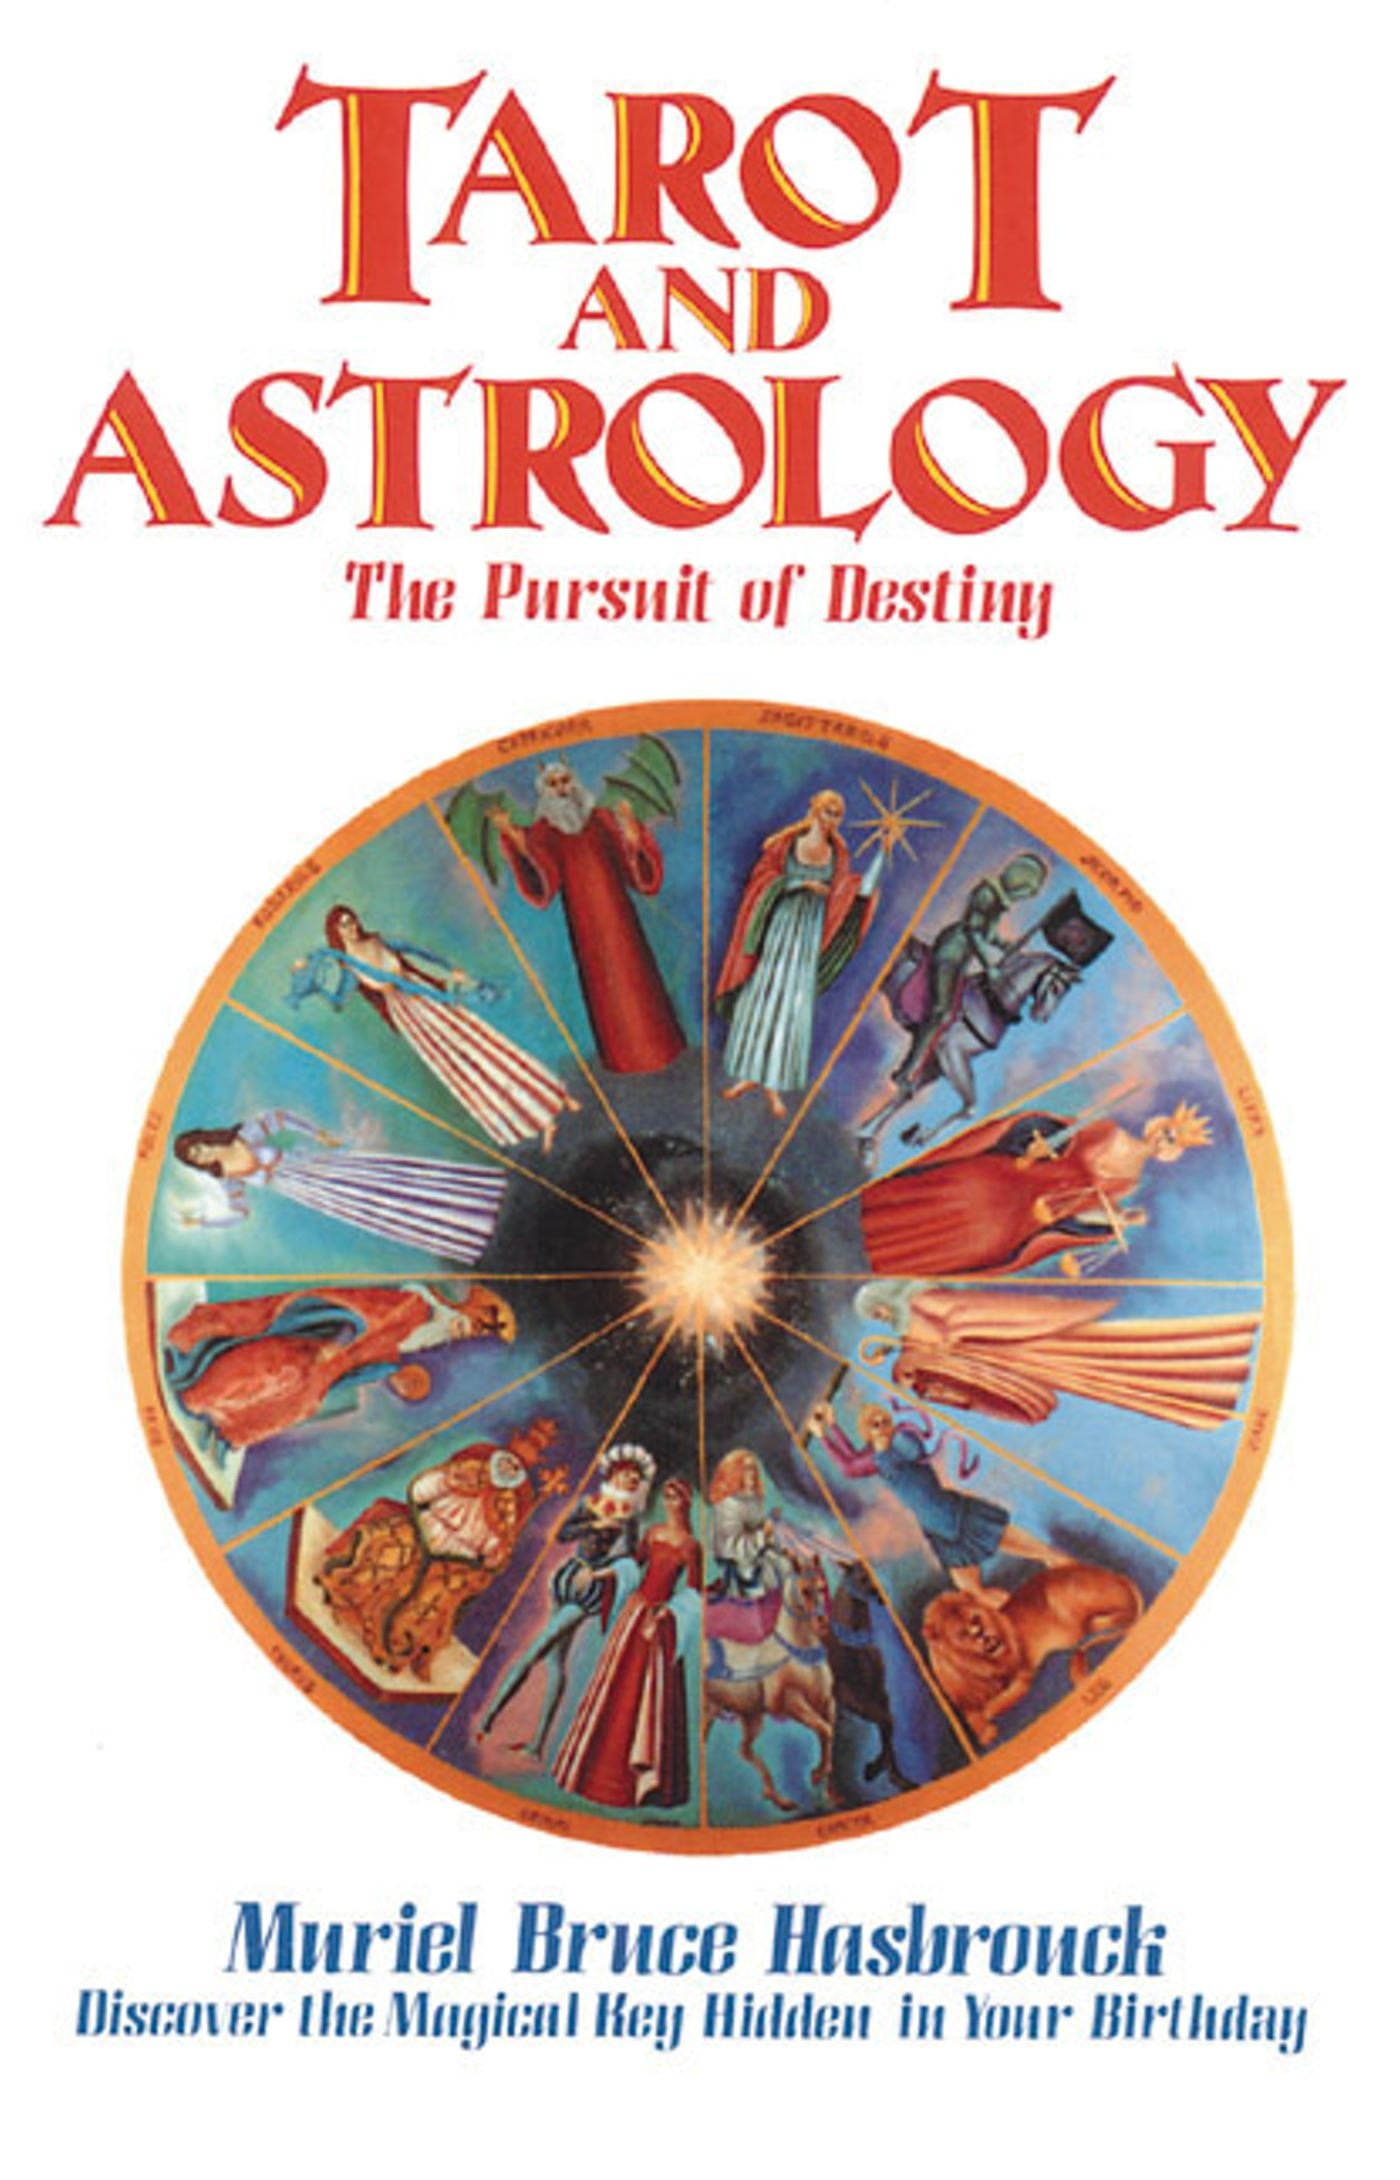 Tarot and Astrology: The Pursuit of Destiny: Muriel Bruce Hasbrouck:  9780892811212: Amazon.com: Books